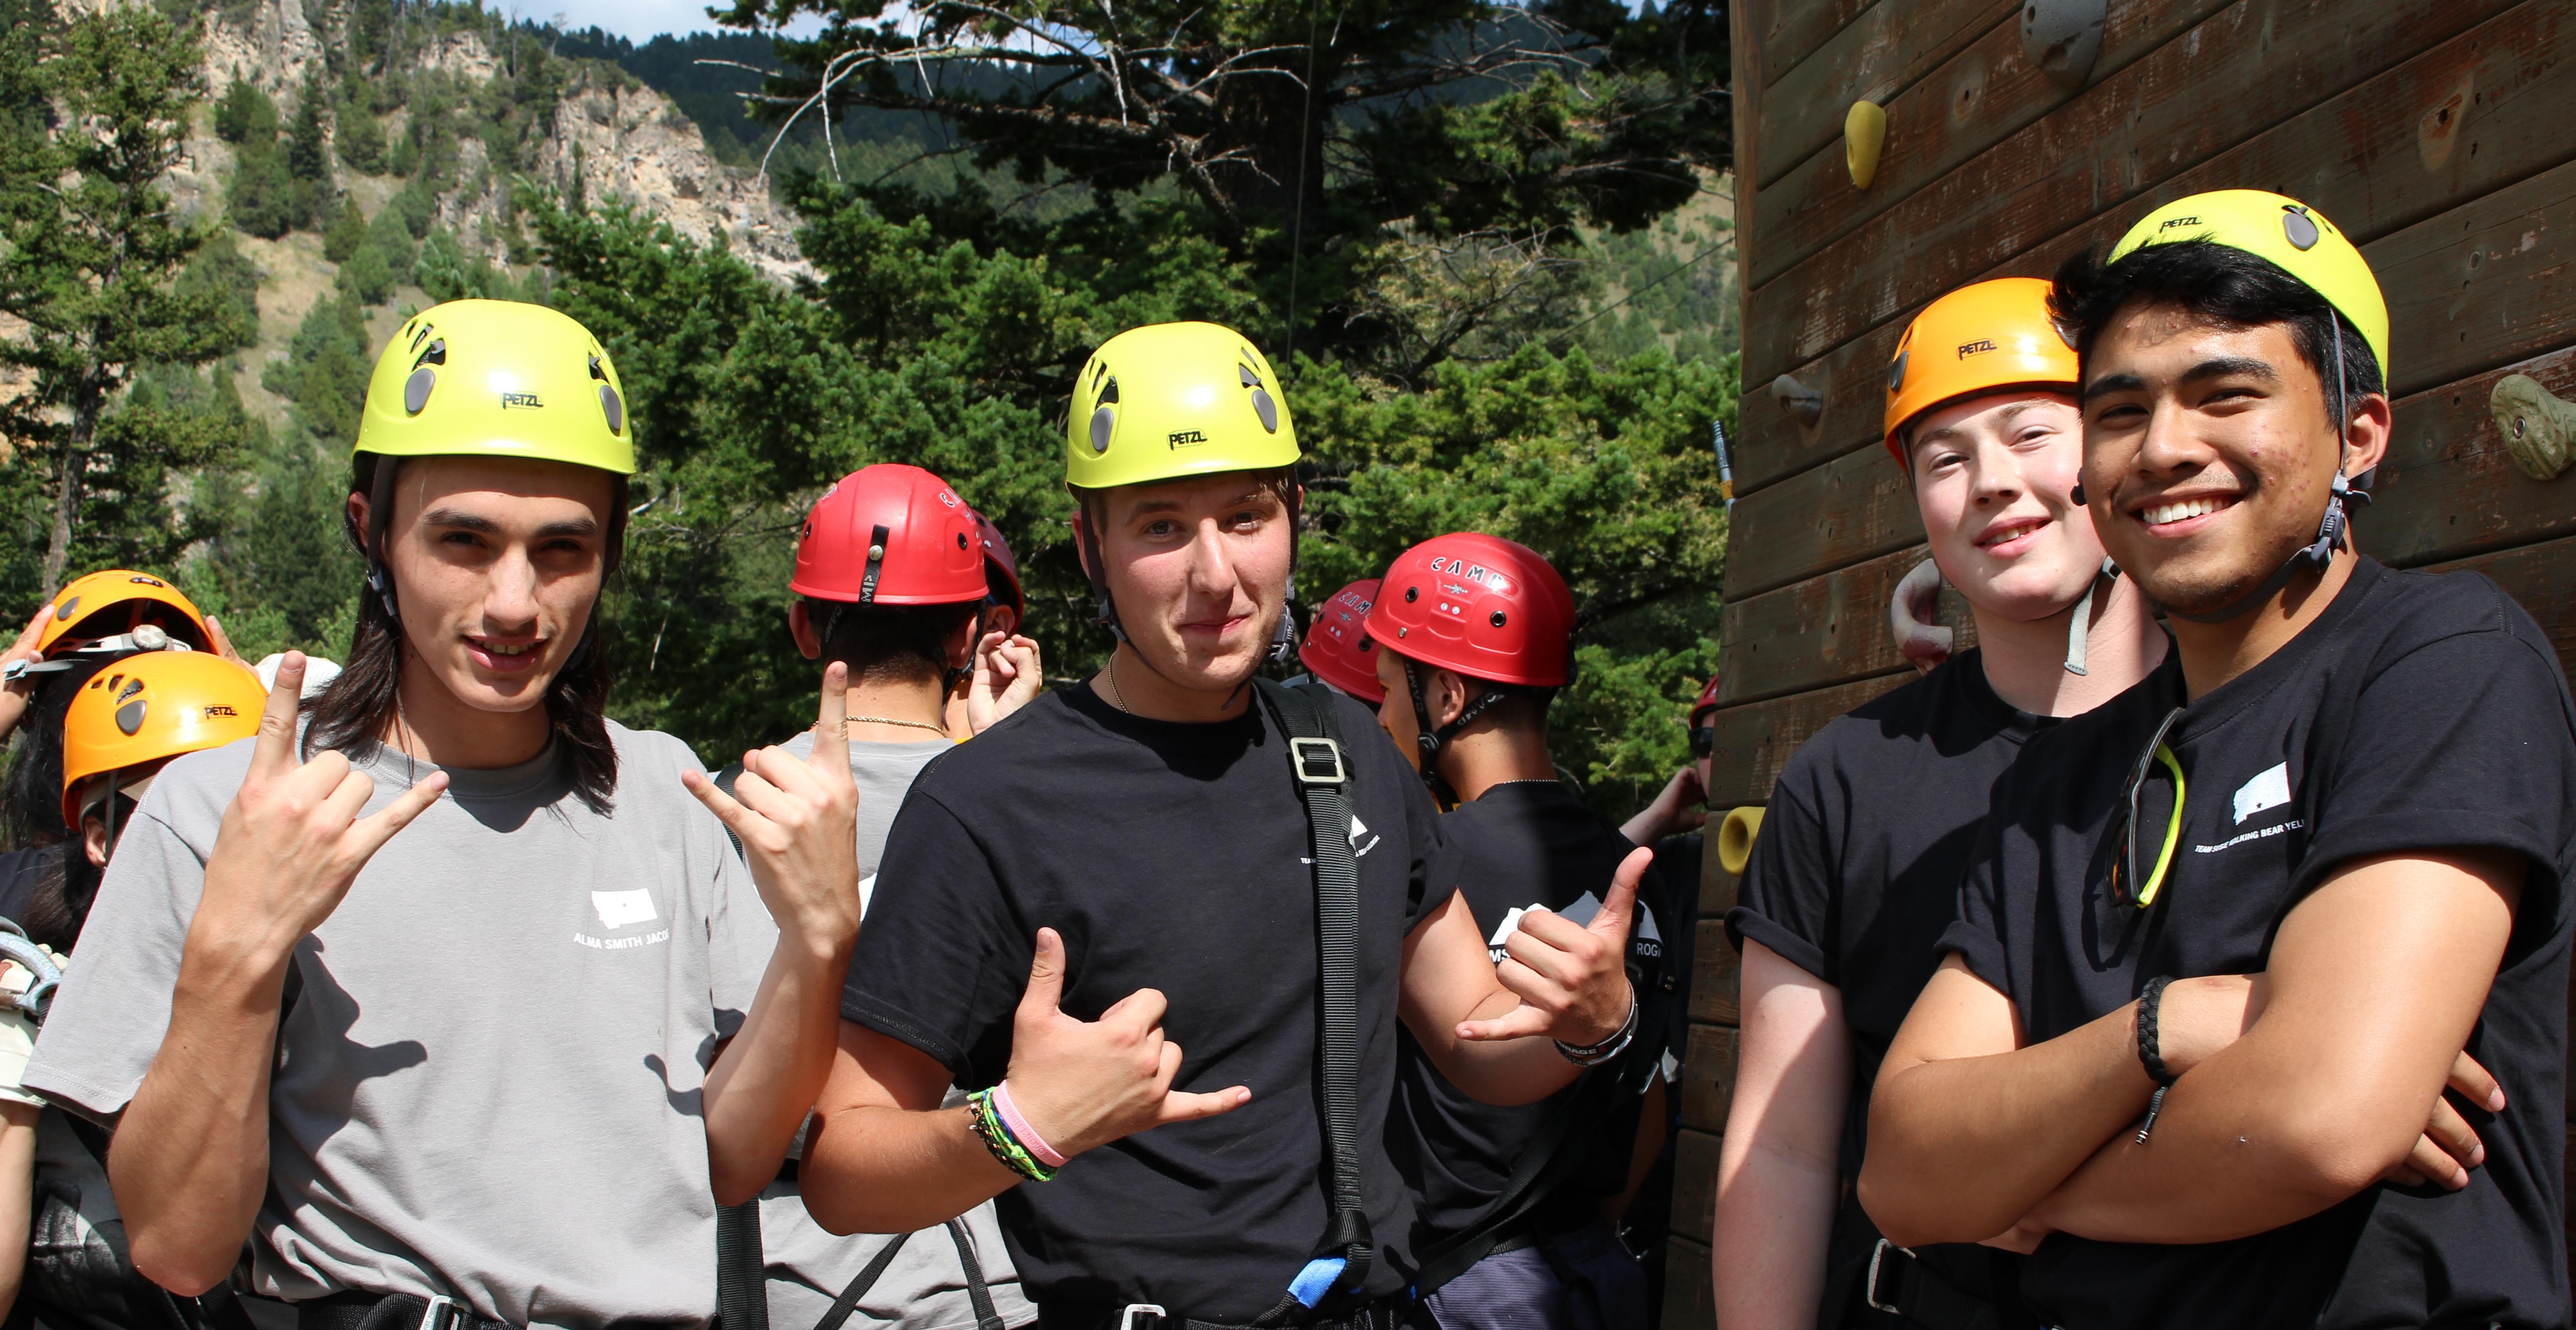 MSU Hilleman Scholars prepare for the ropes course at Rockhaven Summer Camp